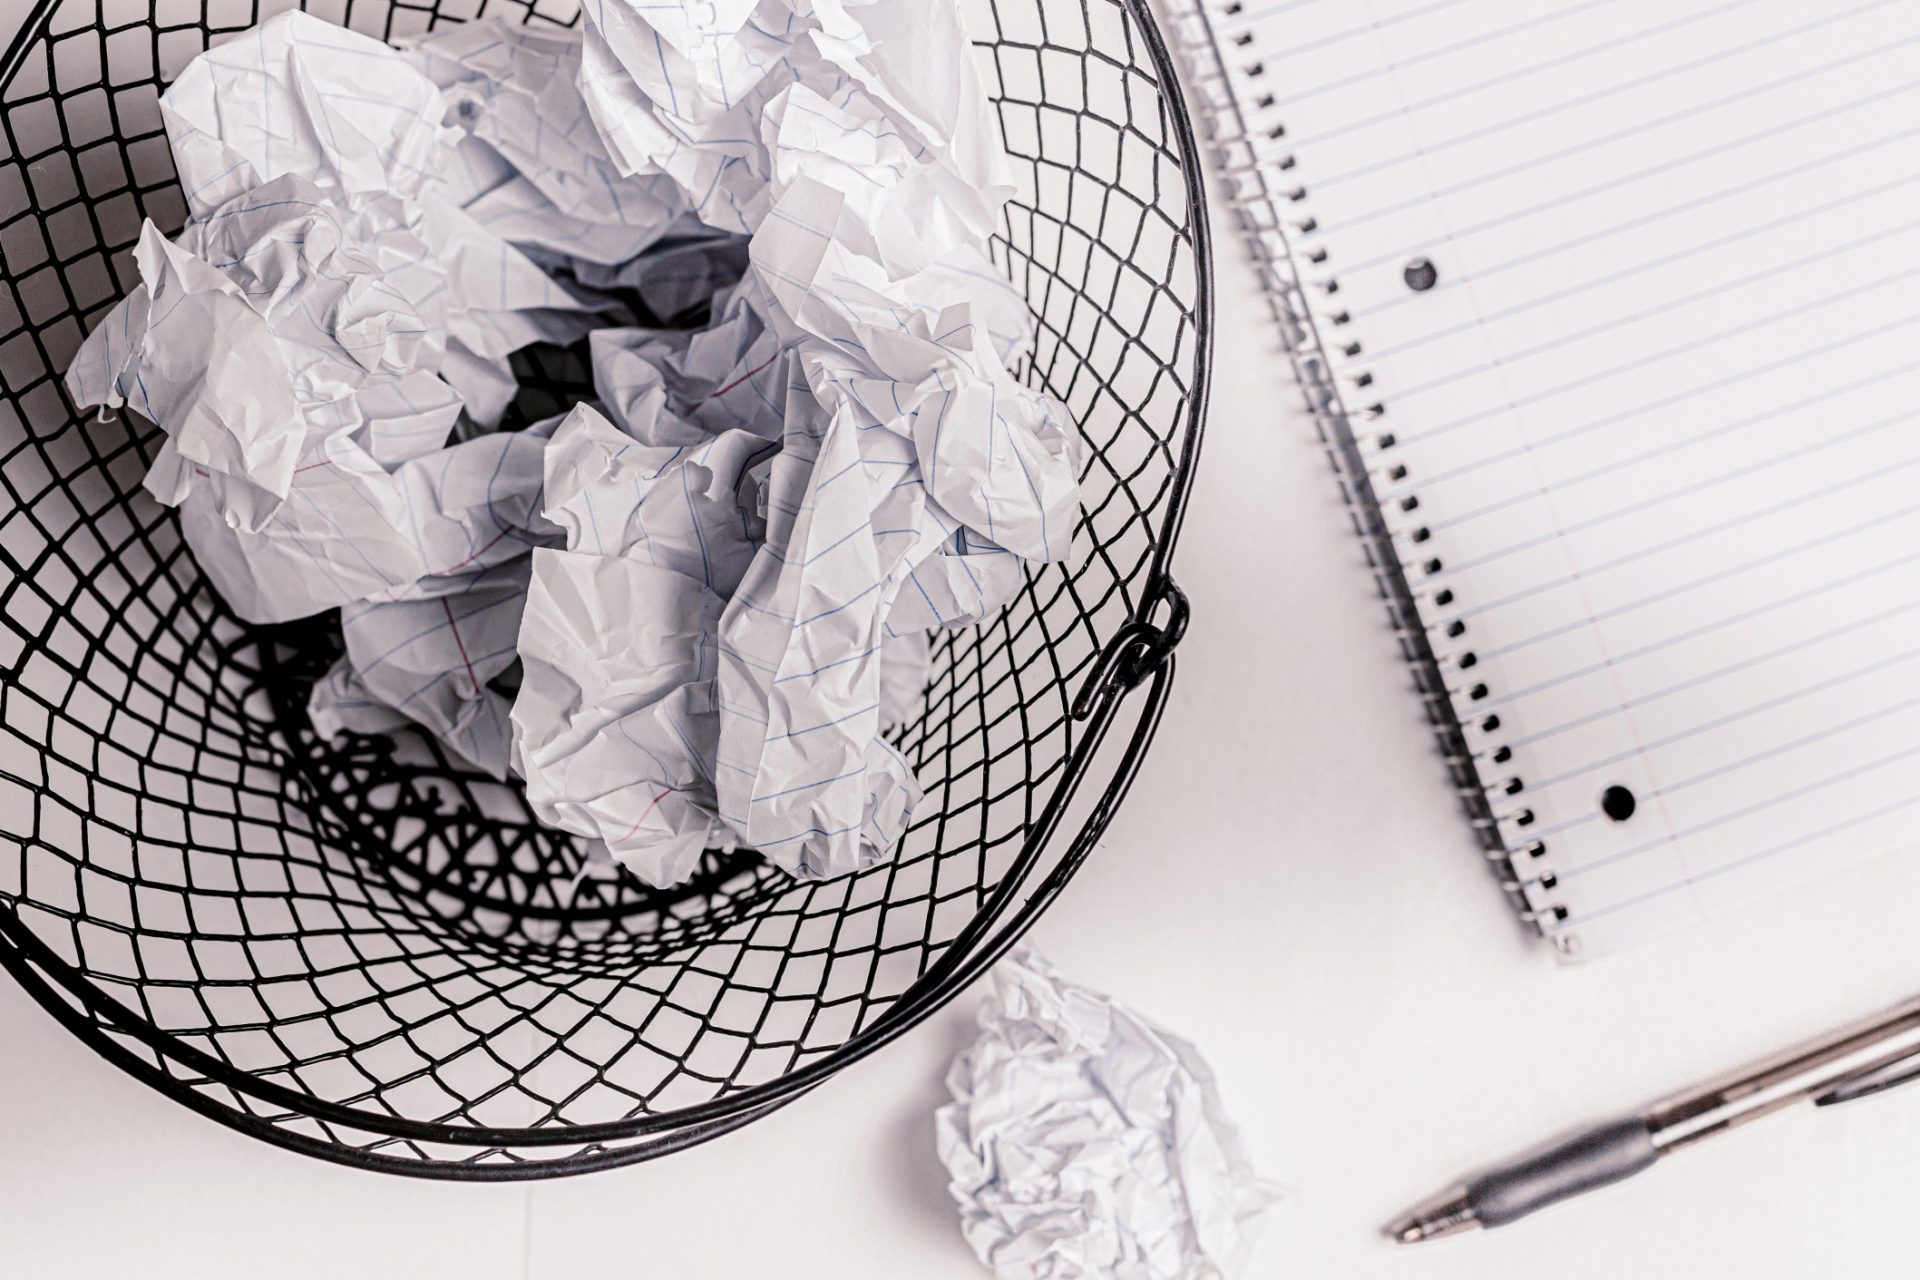 Black wire wastepaper basket with crumpled paper next to a notebook, ball of paper, and pen with a white background